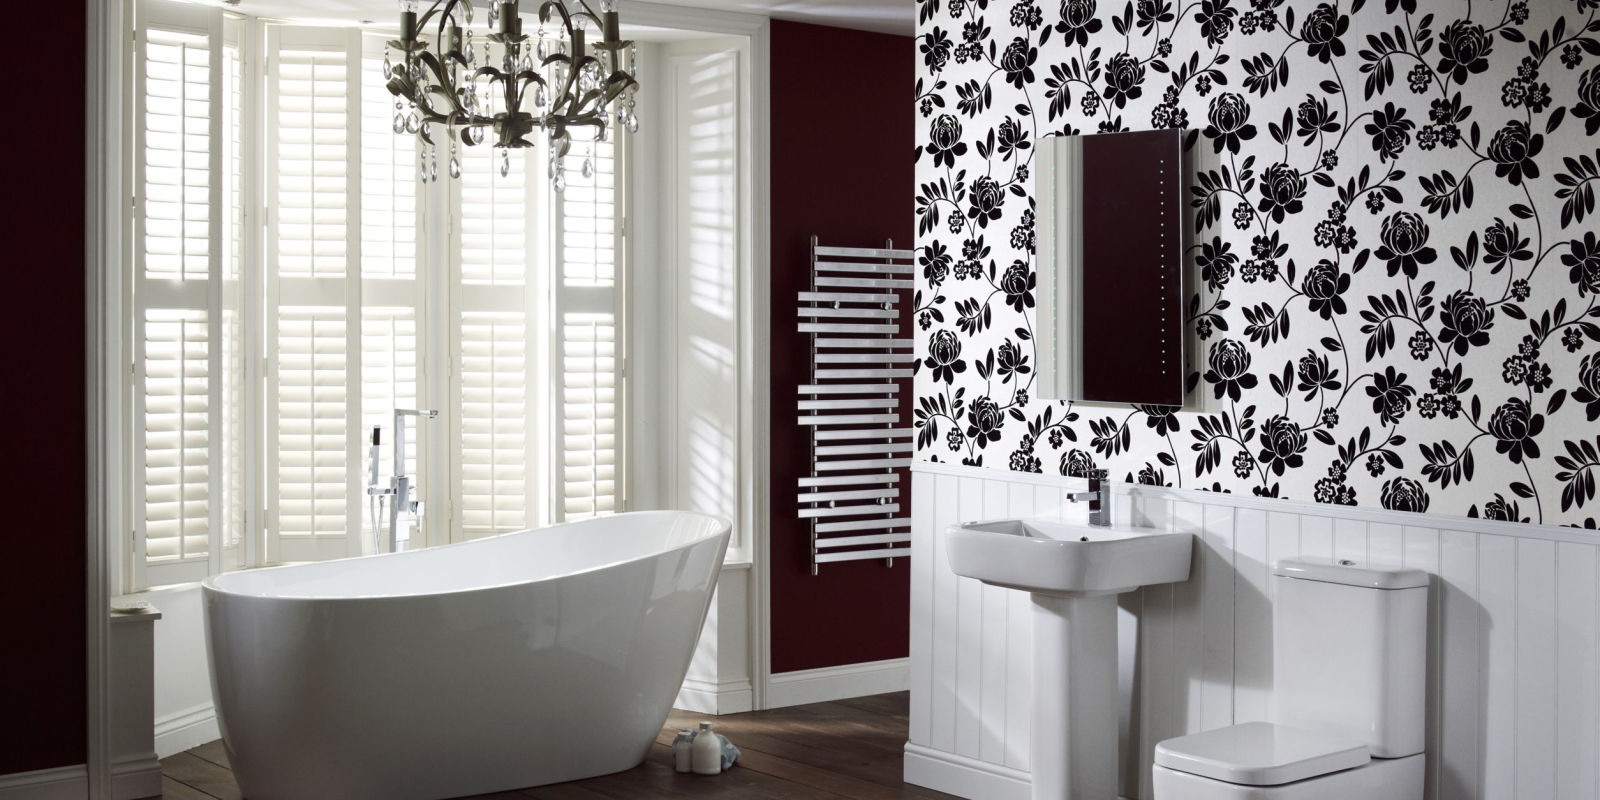 Can i use wallpaper in my bathroom for Bathroom ideas you can use